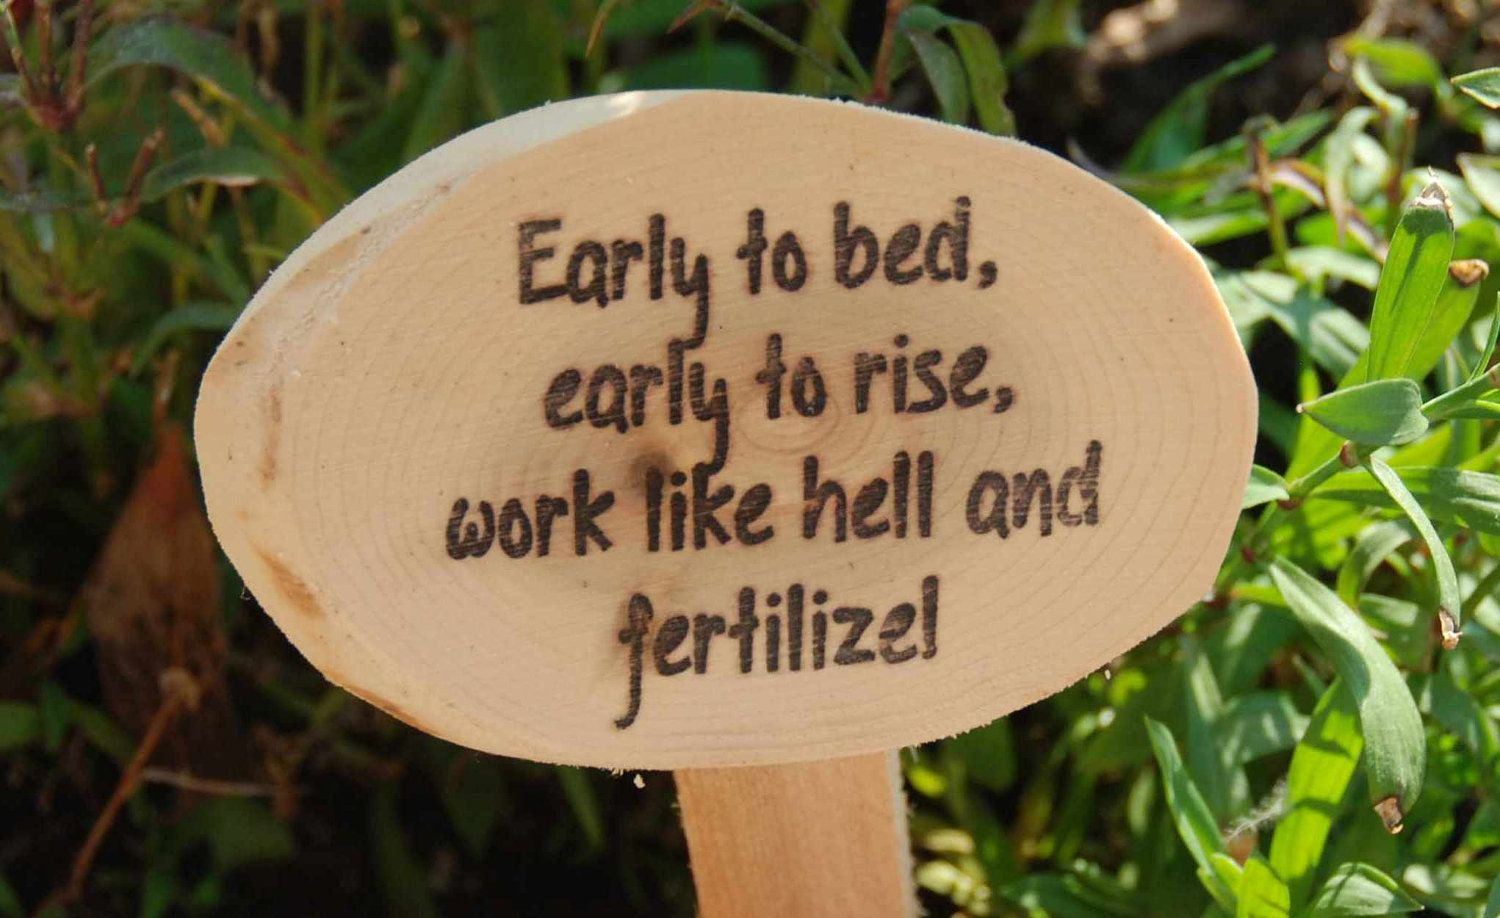 Humorous Garden Signs | Humorous Garden Signs Ideal Gift For The ...